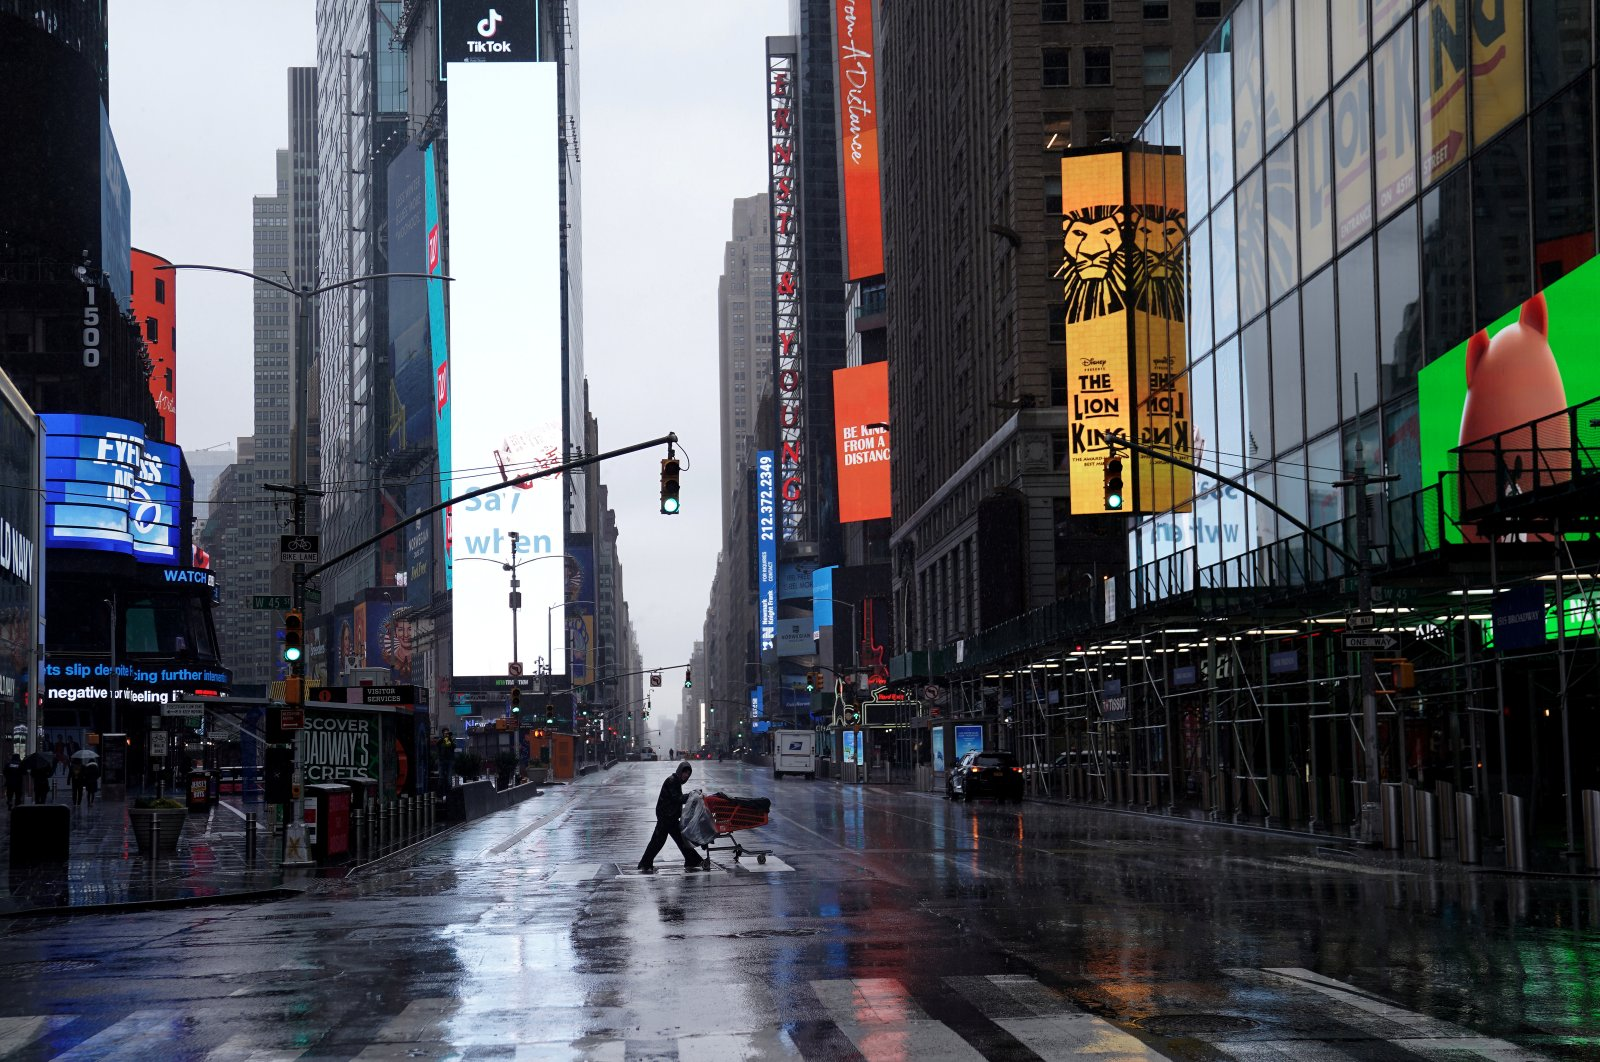 A homeless person pushes his belongings through a deserted Times Square, New York, Monday, March 23, 2020. (Reuters Photo)